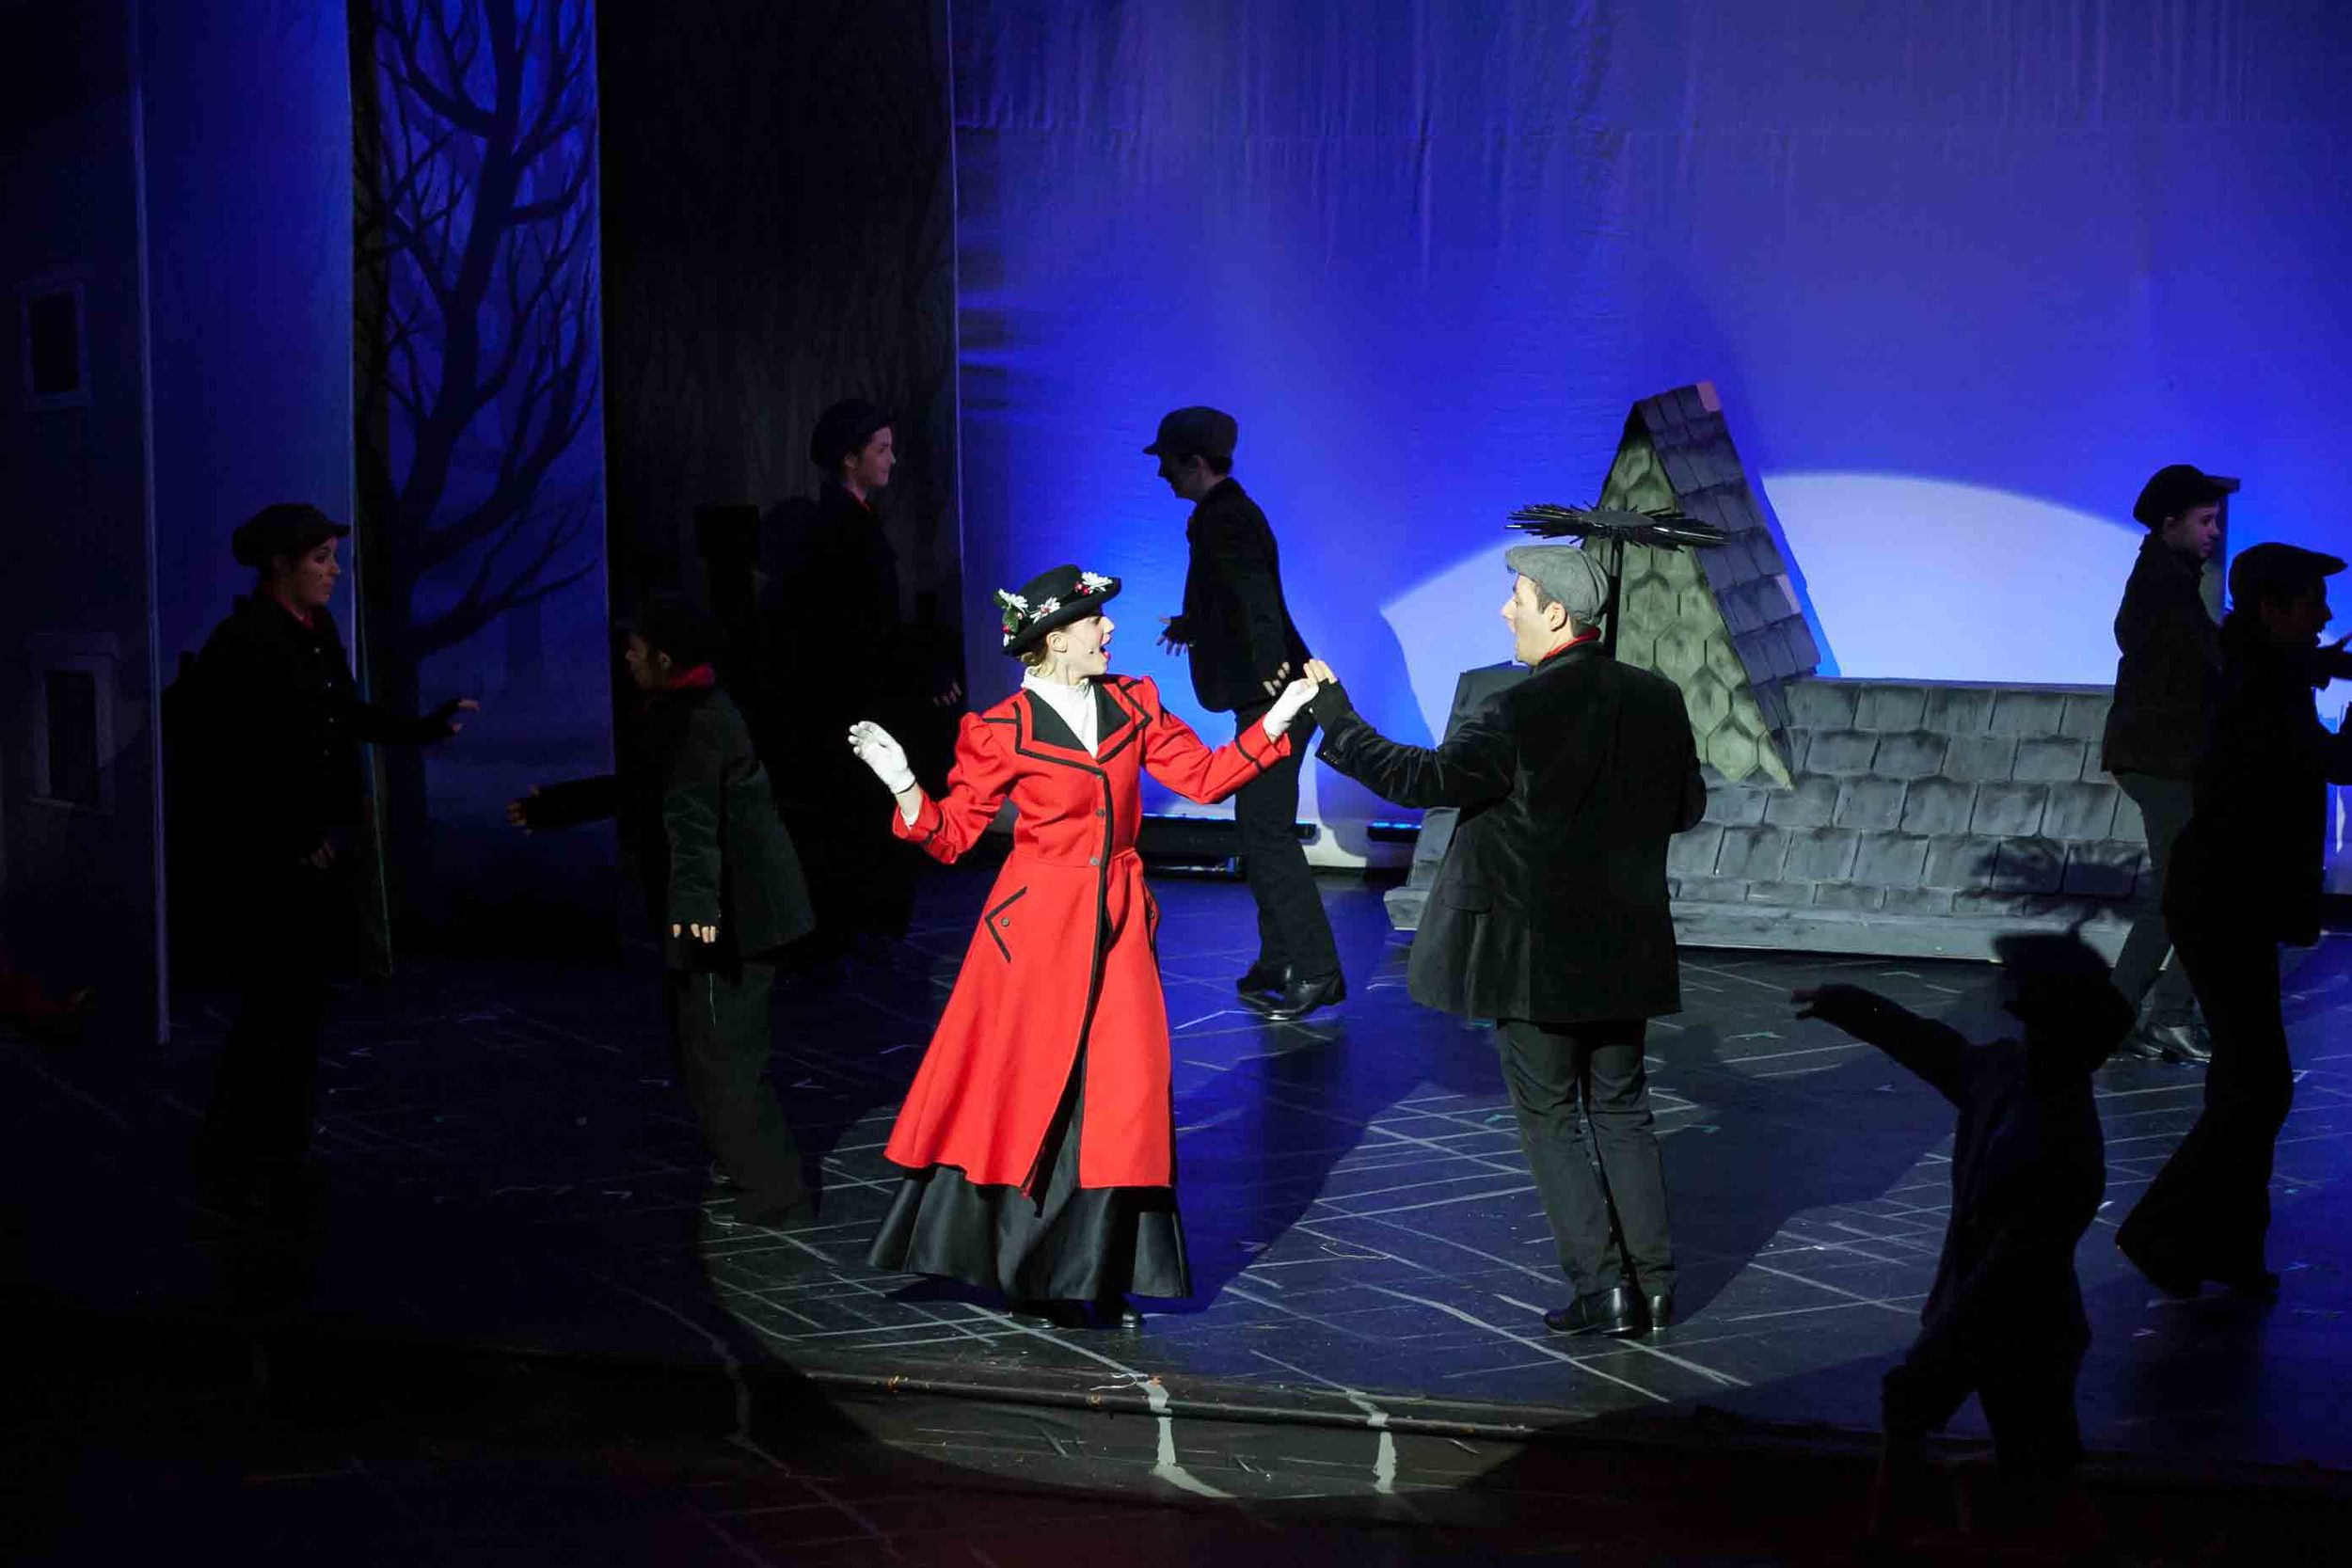 2-4-16 Mary Poppins Proper Cast 0381.jpg